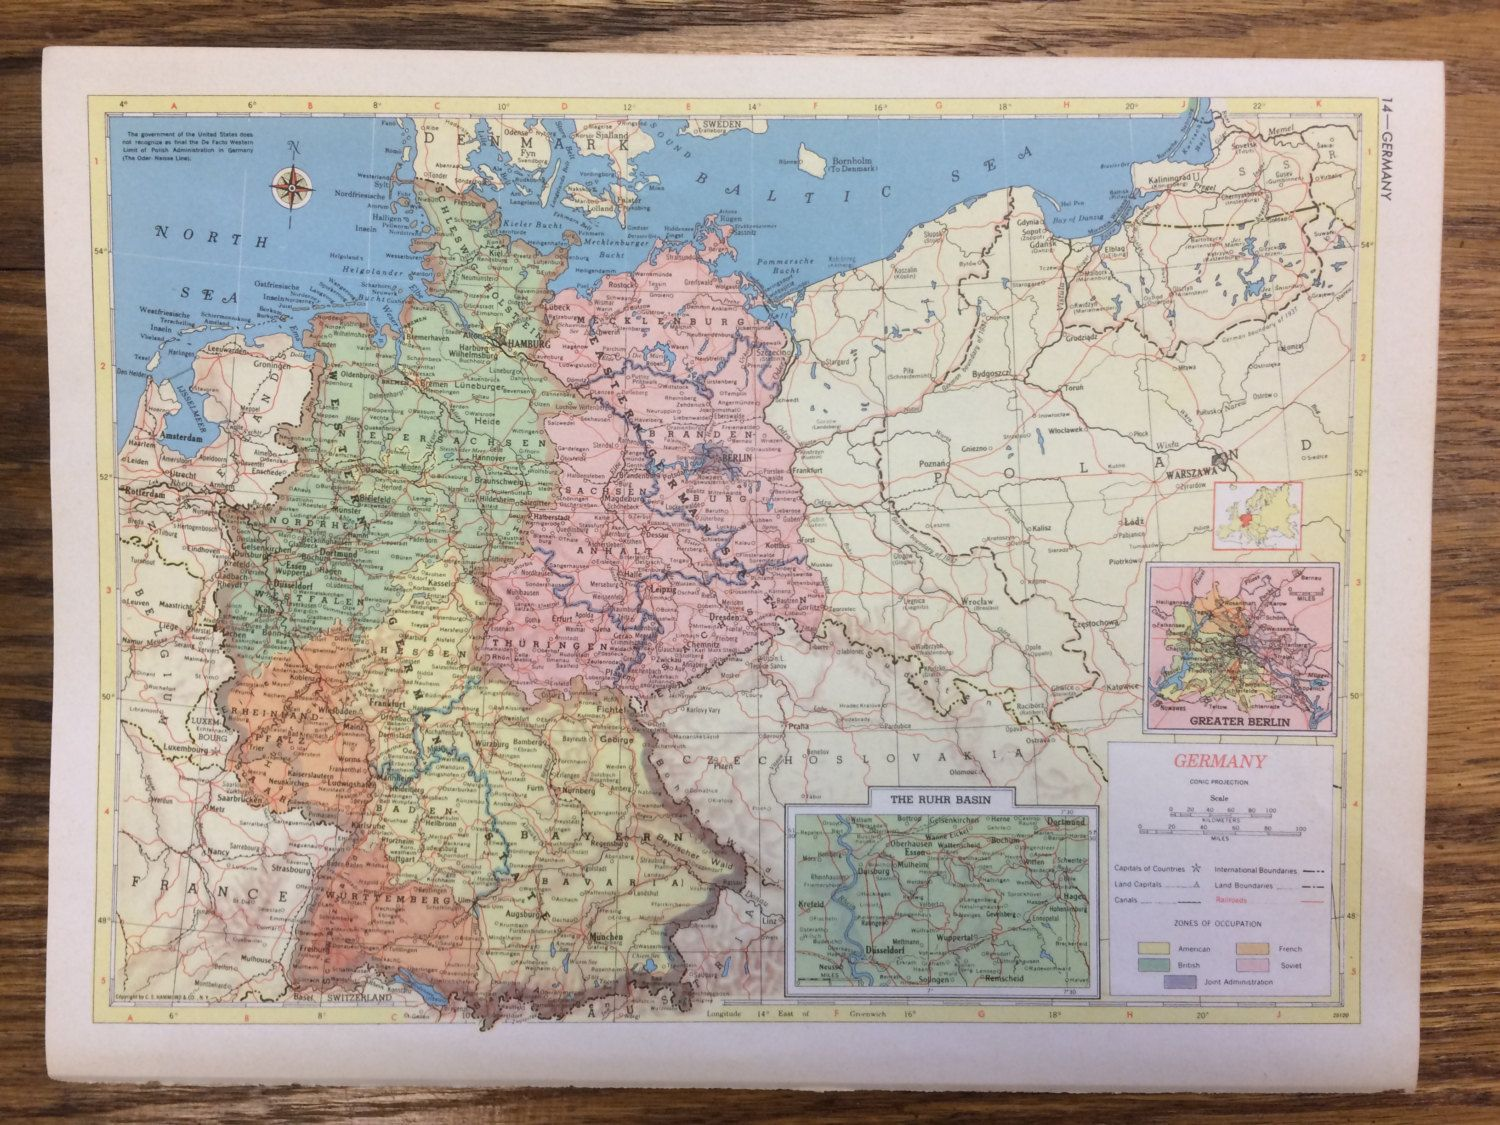 Germany or norway sweden finland denmark large map 1955 germany or norway sweden finland denmark large map 1955 hammonds new supreme world atlas vintage gumiabroncs Choice Image